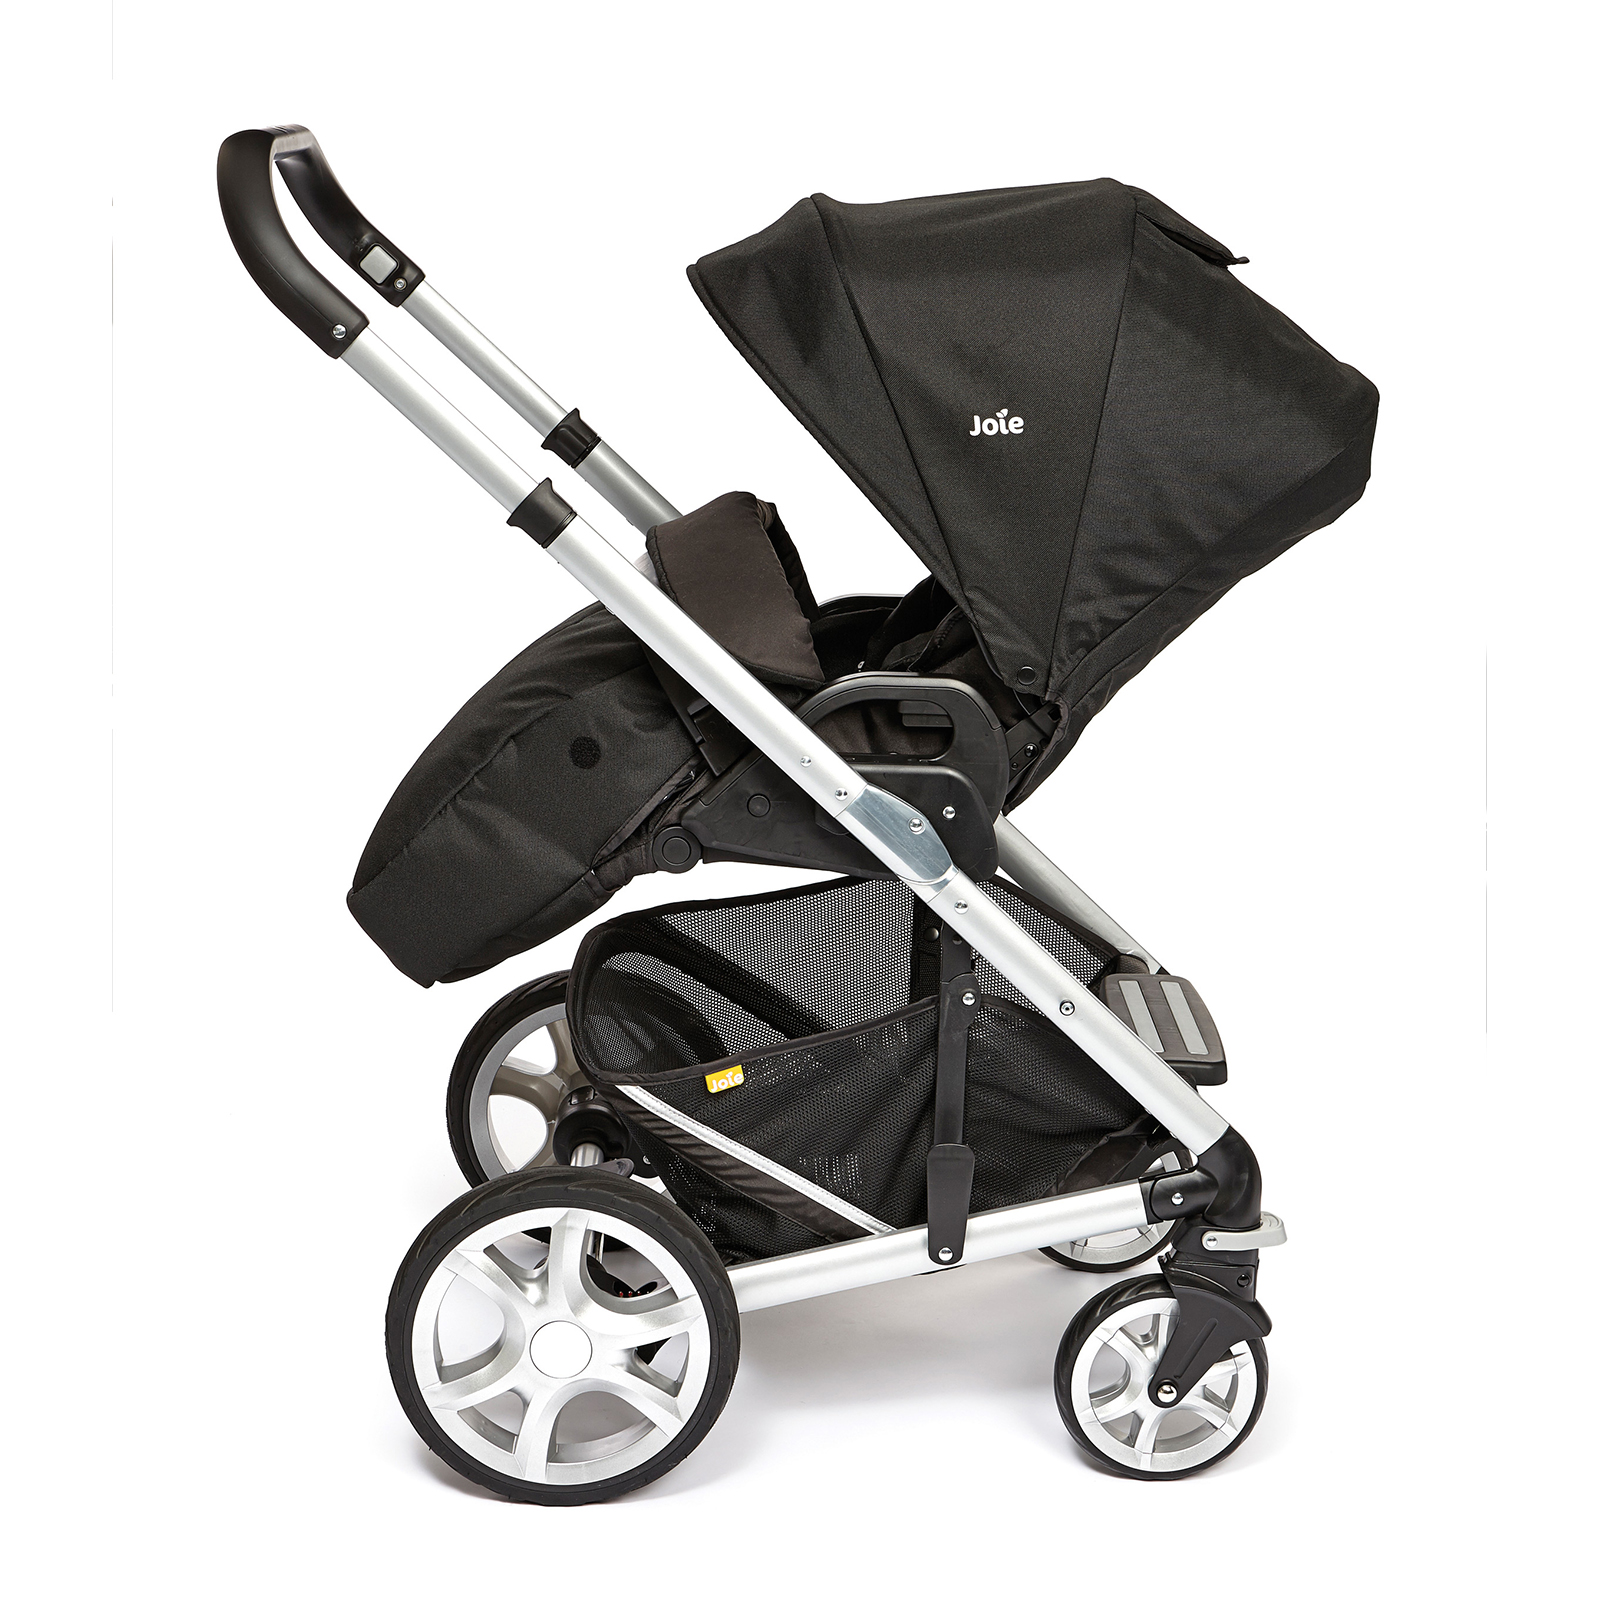 Travel System Joie Chrome Details About New Joie Black Carbon Chrome Plus Travel System Silver Frame From Birth